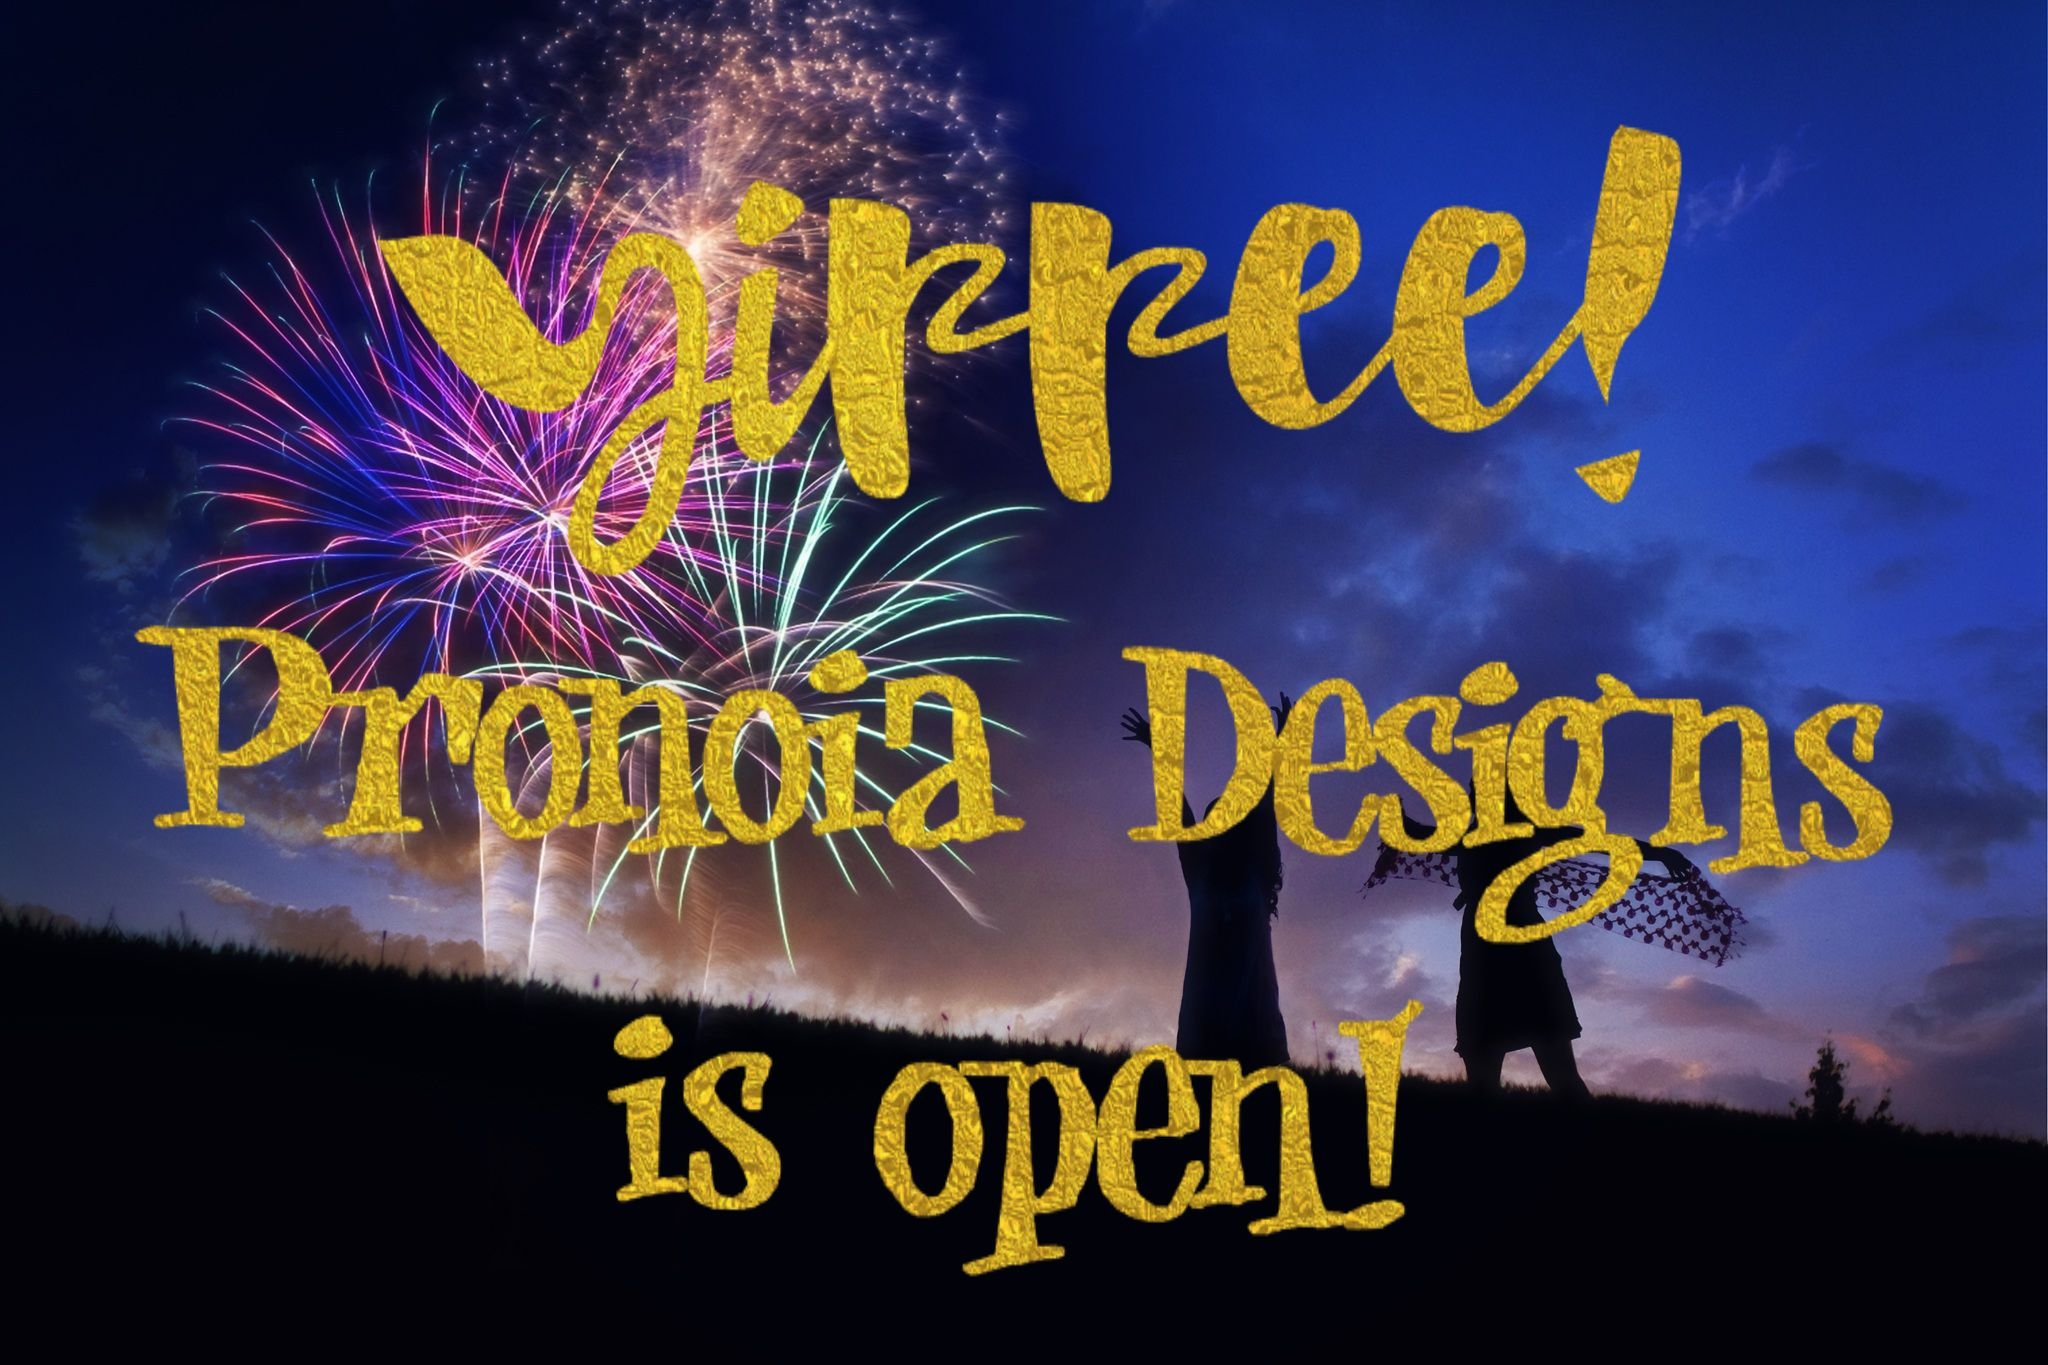 pronoia designs